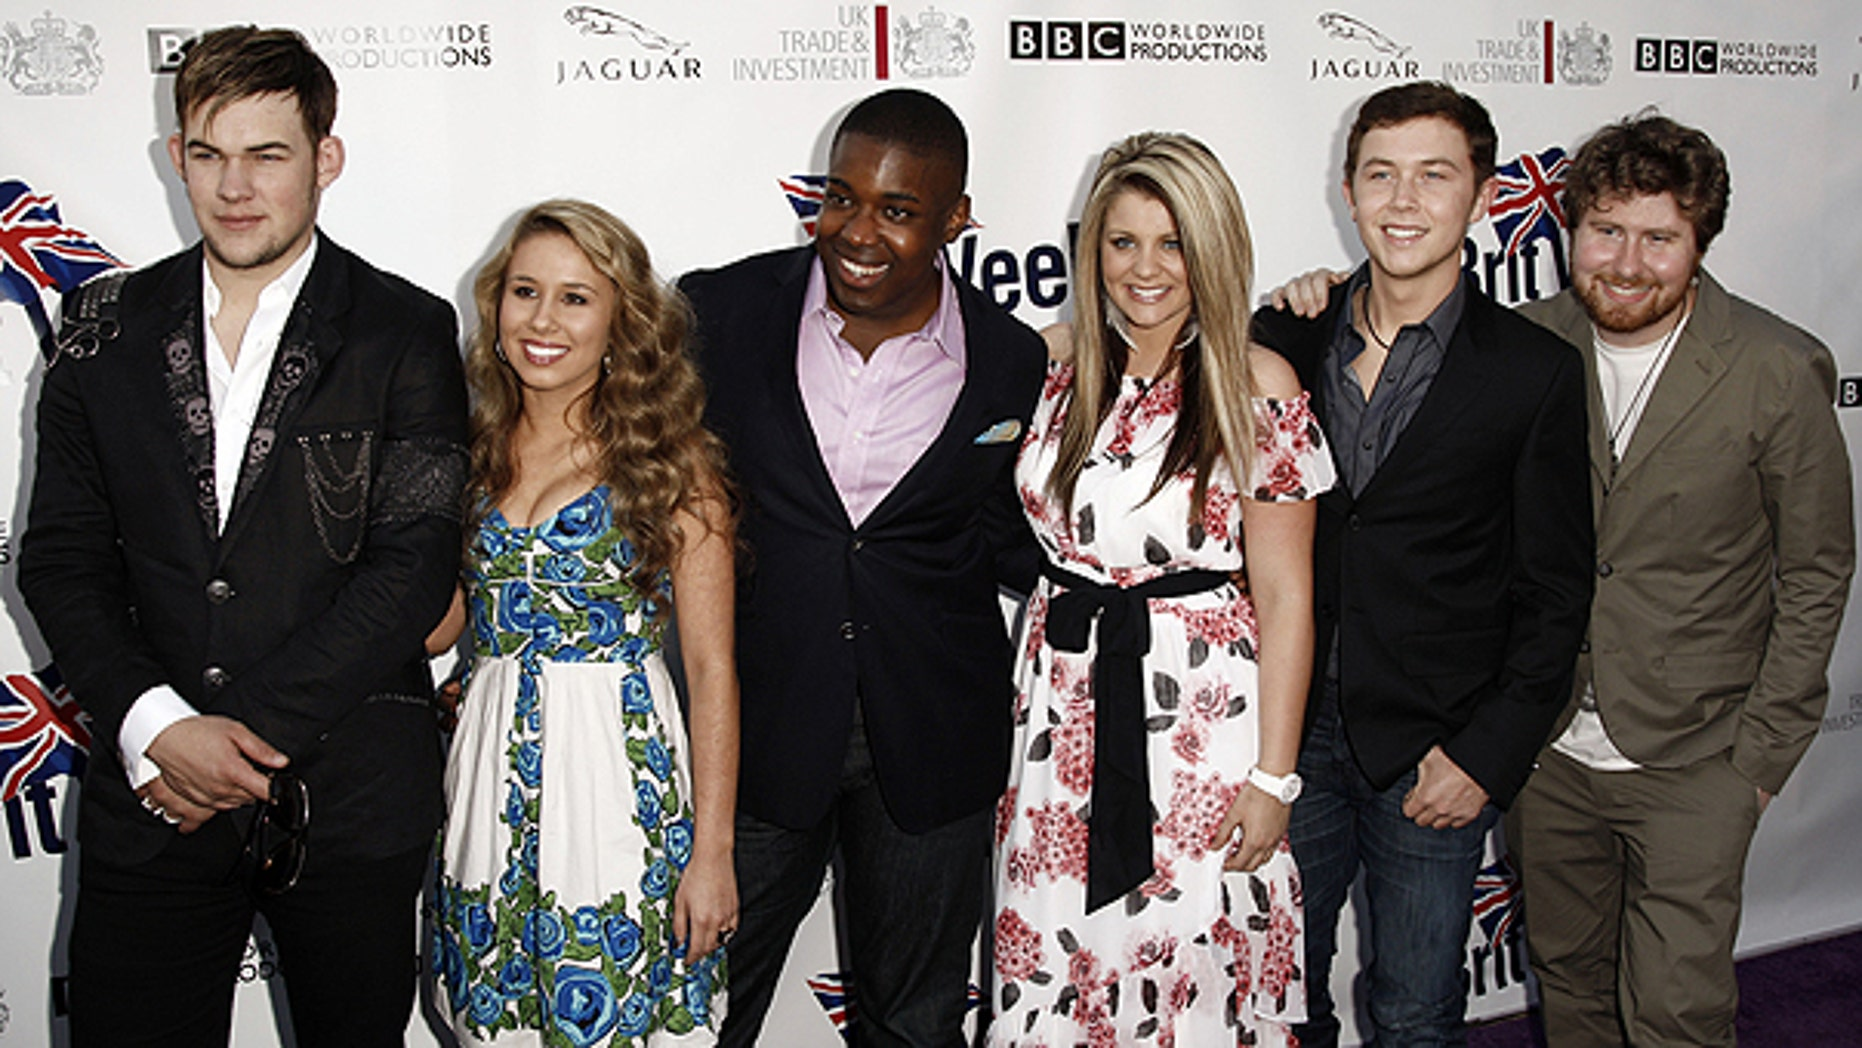 April 26: From left, 'American Idol' contestants James Durbin, Haley Reinhart, Jacob Lusk, Lauren Alaina, Scotty McCreery, and Casey Abrams arrive at the champagne launch of the fifth annual BritWeek in Los Angeles.